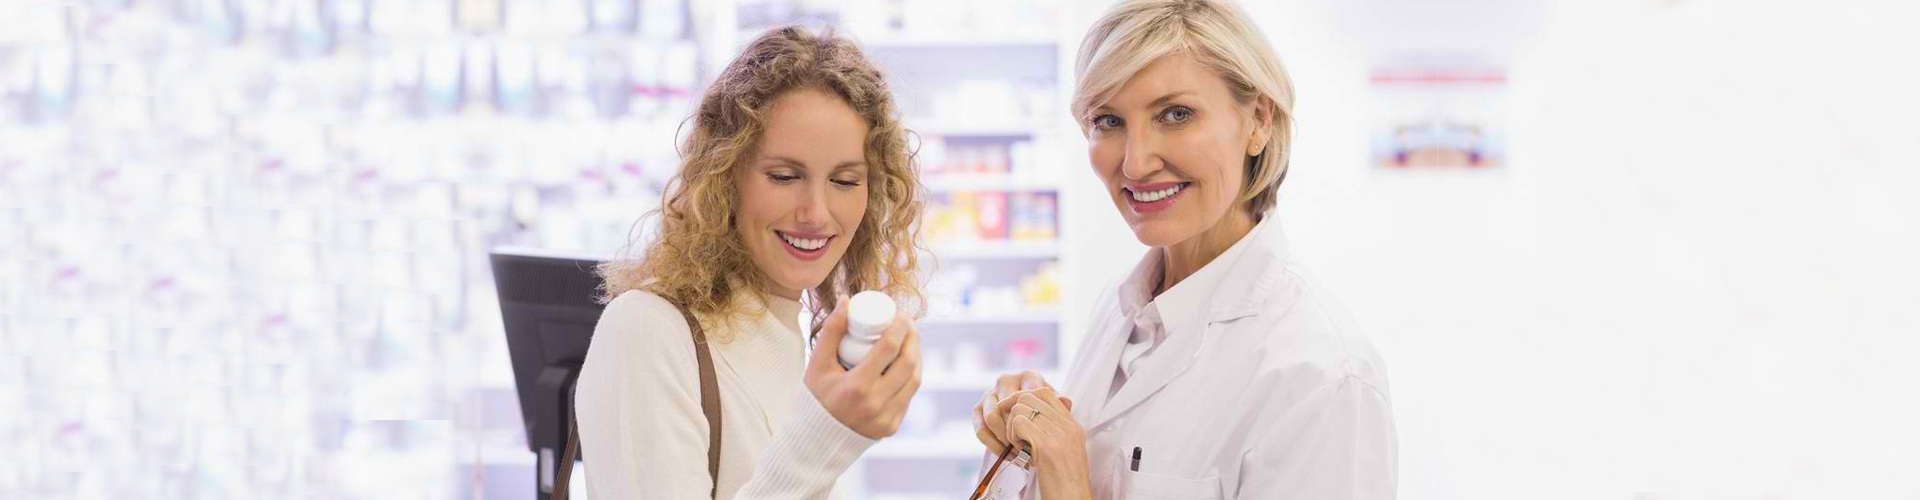 pharmacist and woman in a pharmacy